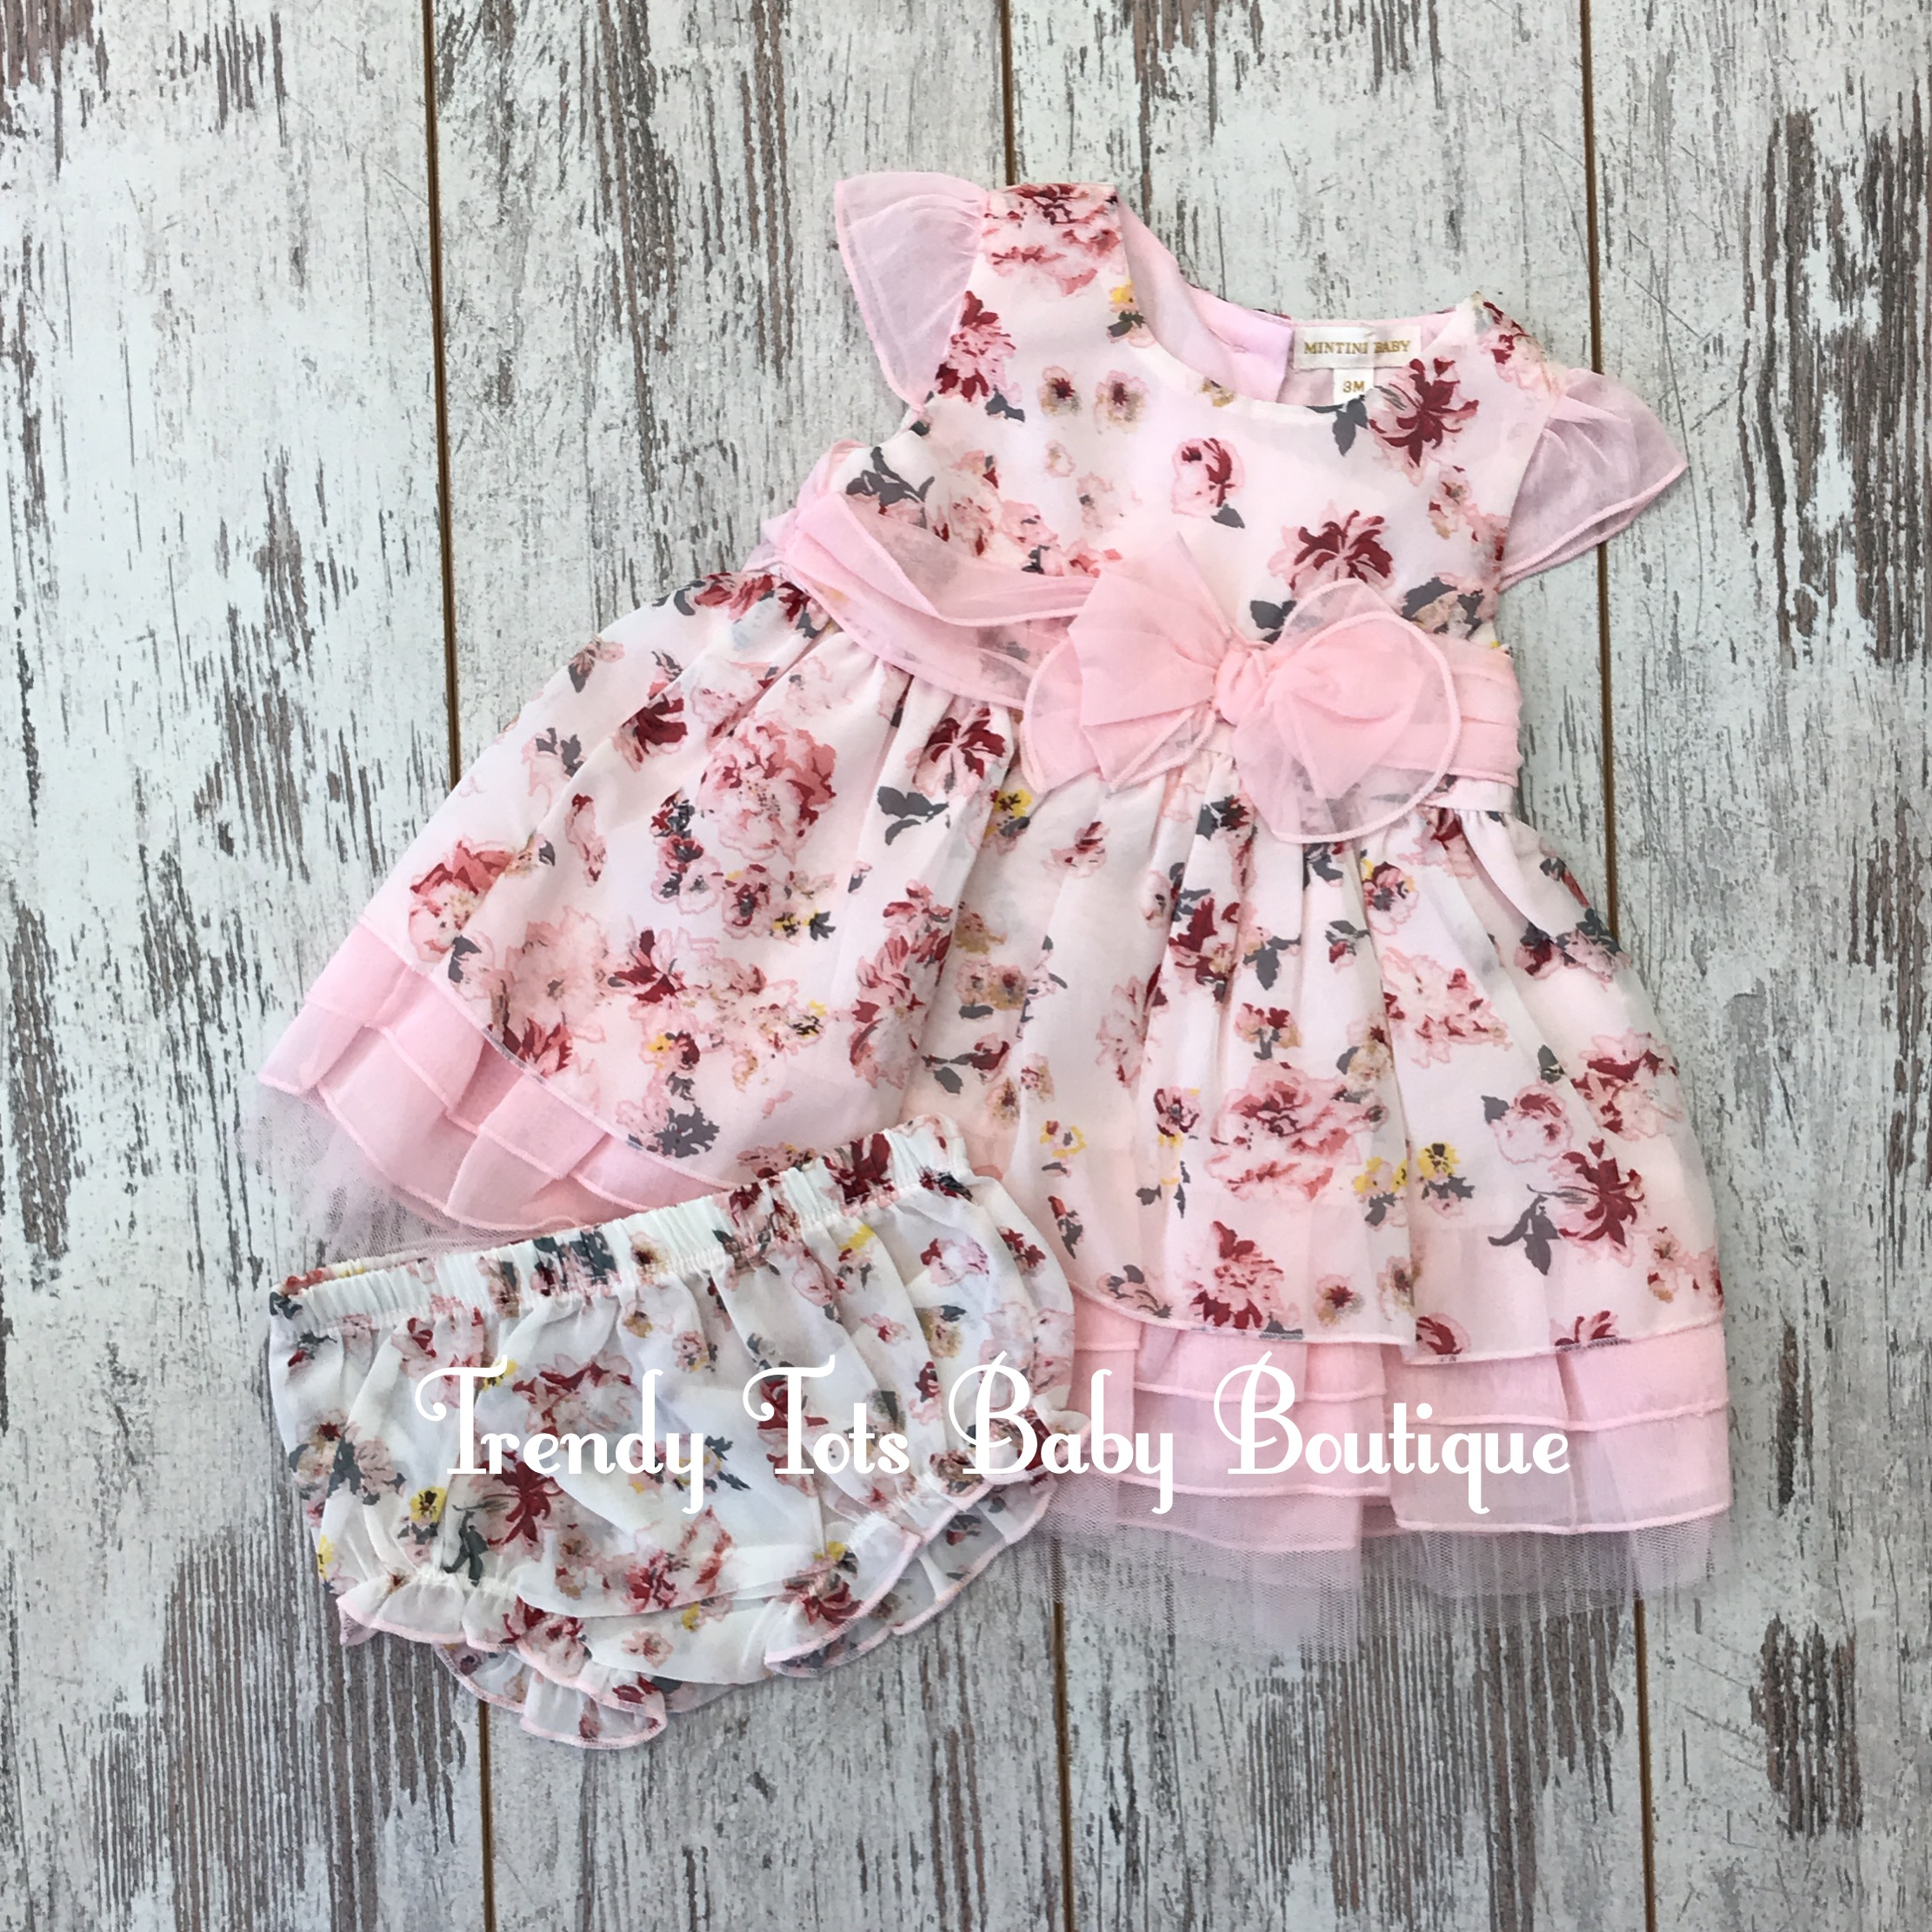 Floral Sun Dress And Knickers Trendy Tots Baby Boutique